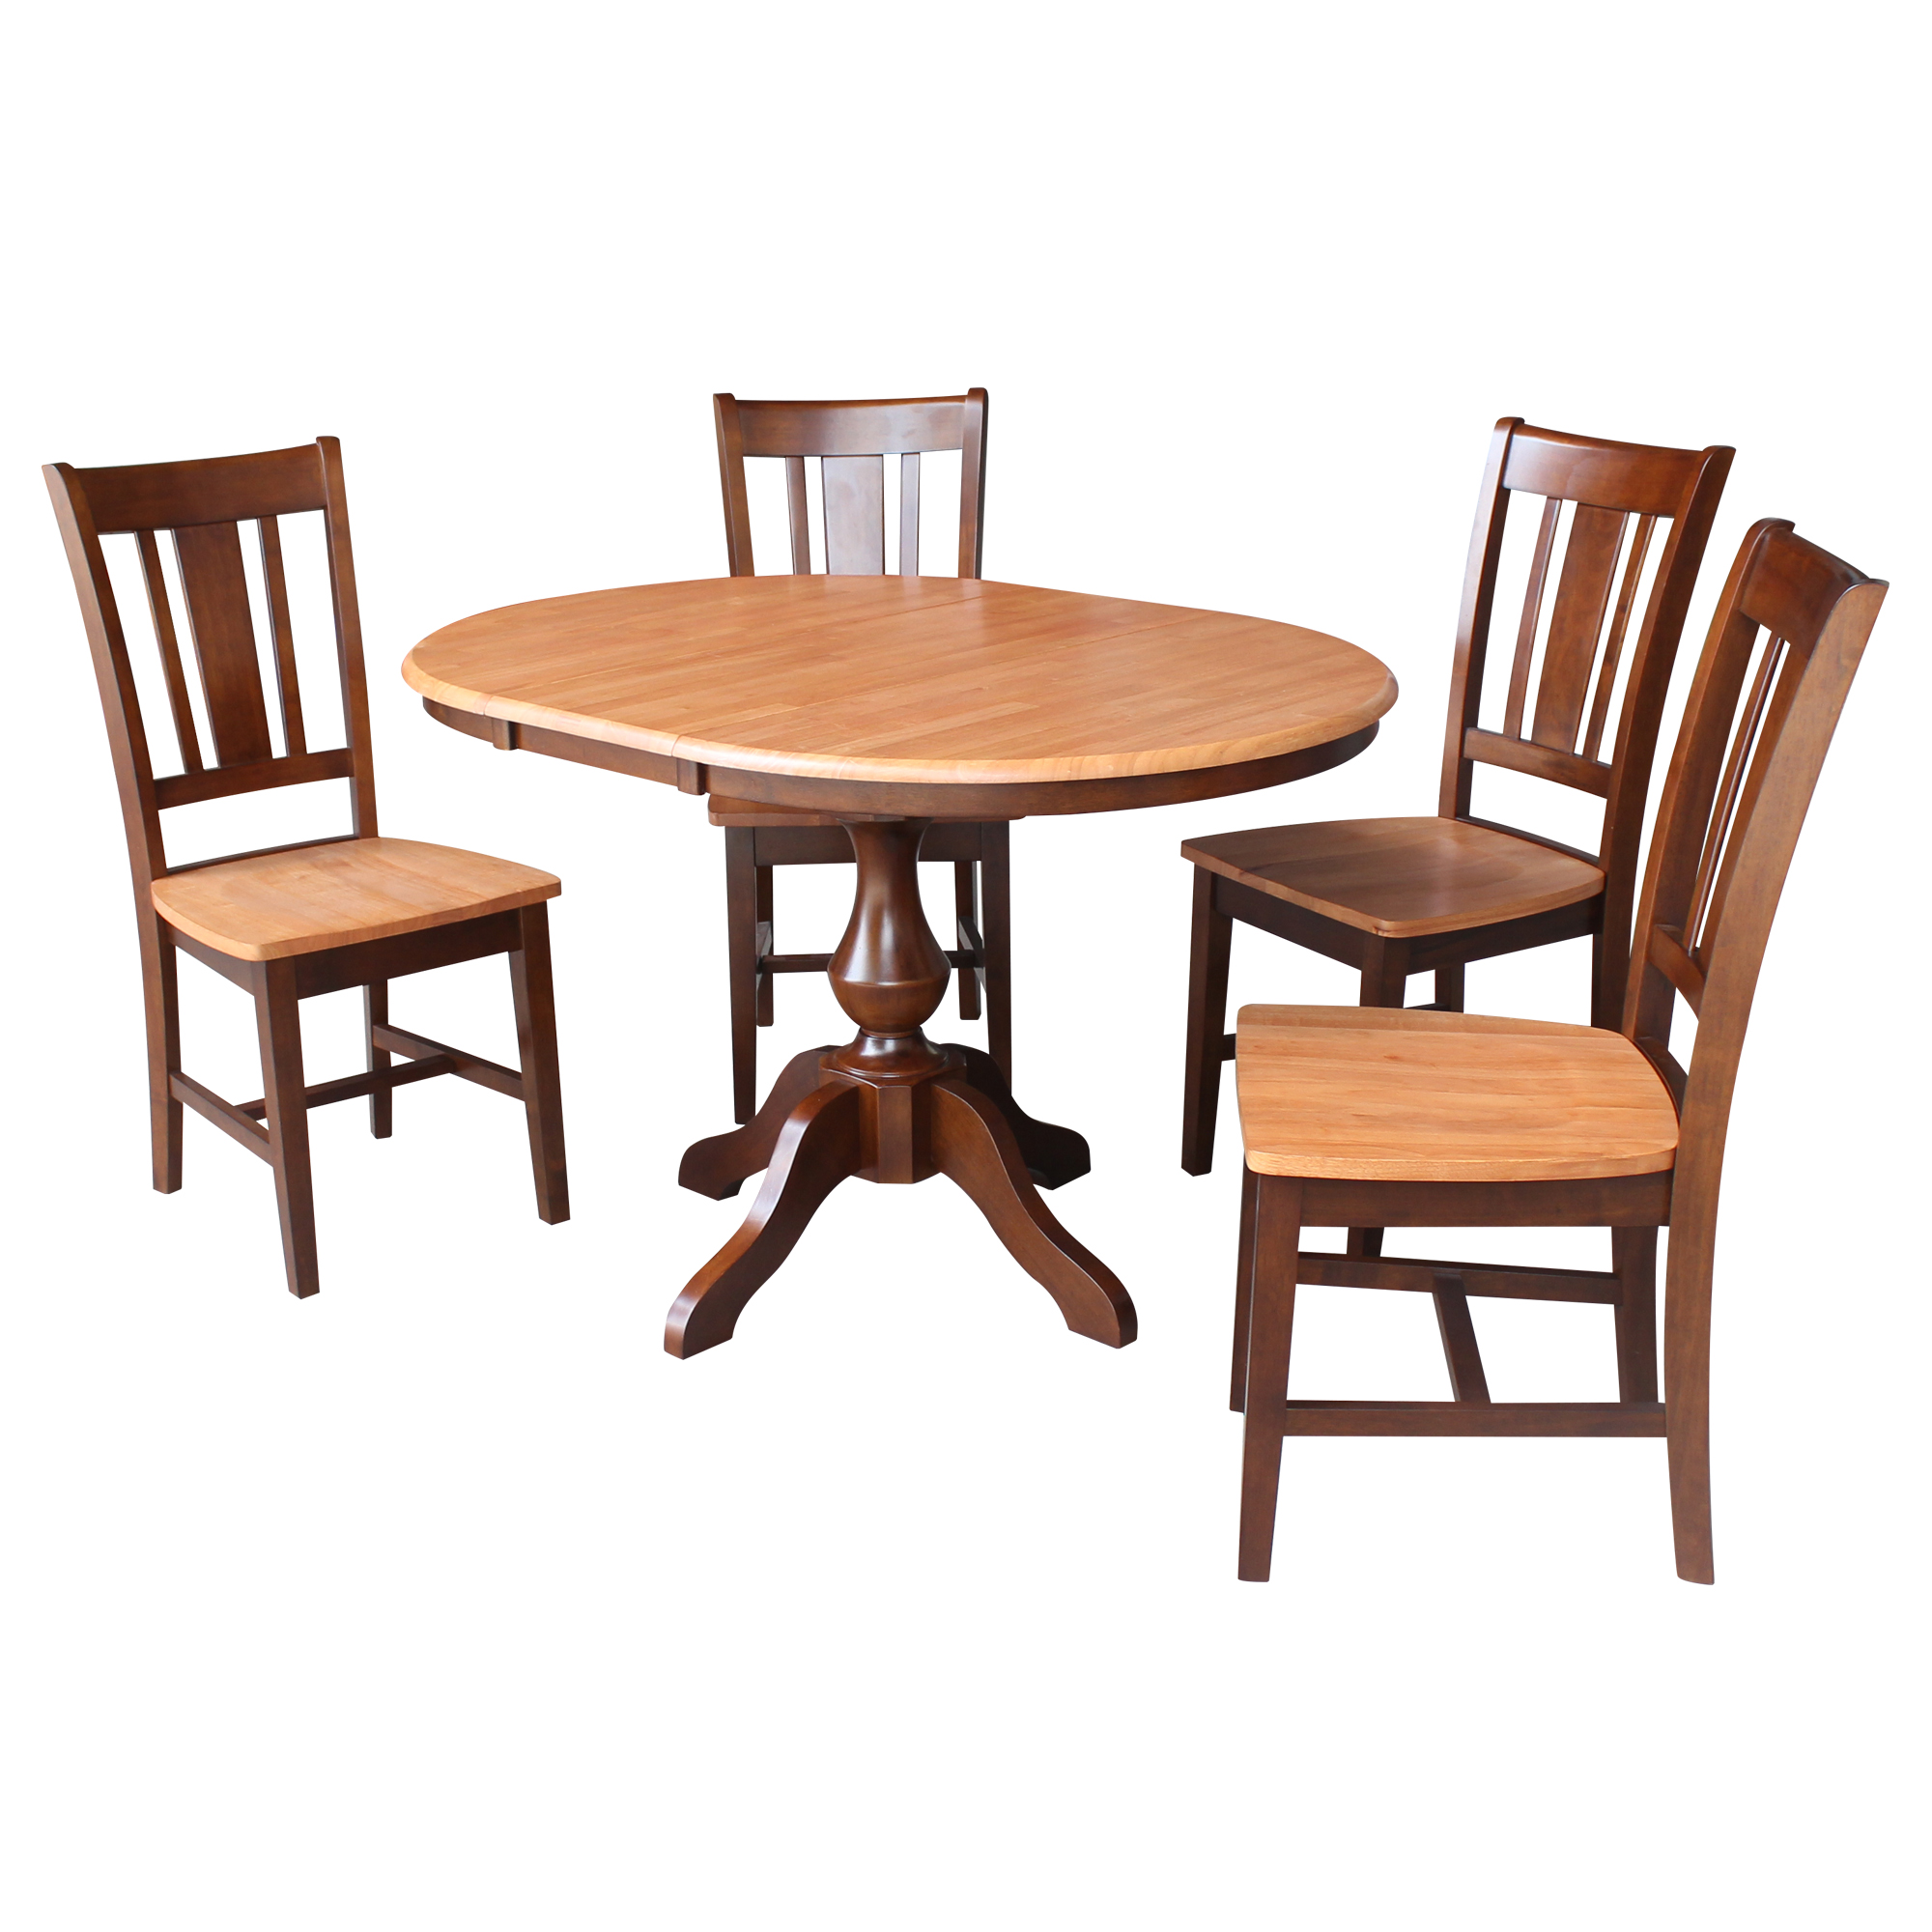 "36"" Round Top Dining Table with 4 San Remo Chairs - Cinnamon/Espresso- 5 Piece Set"